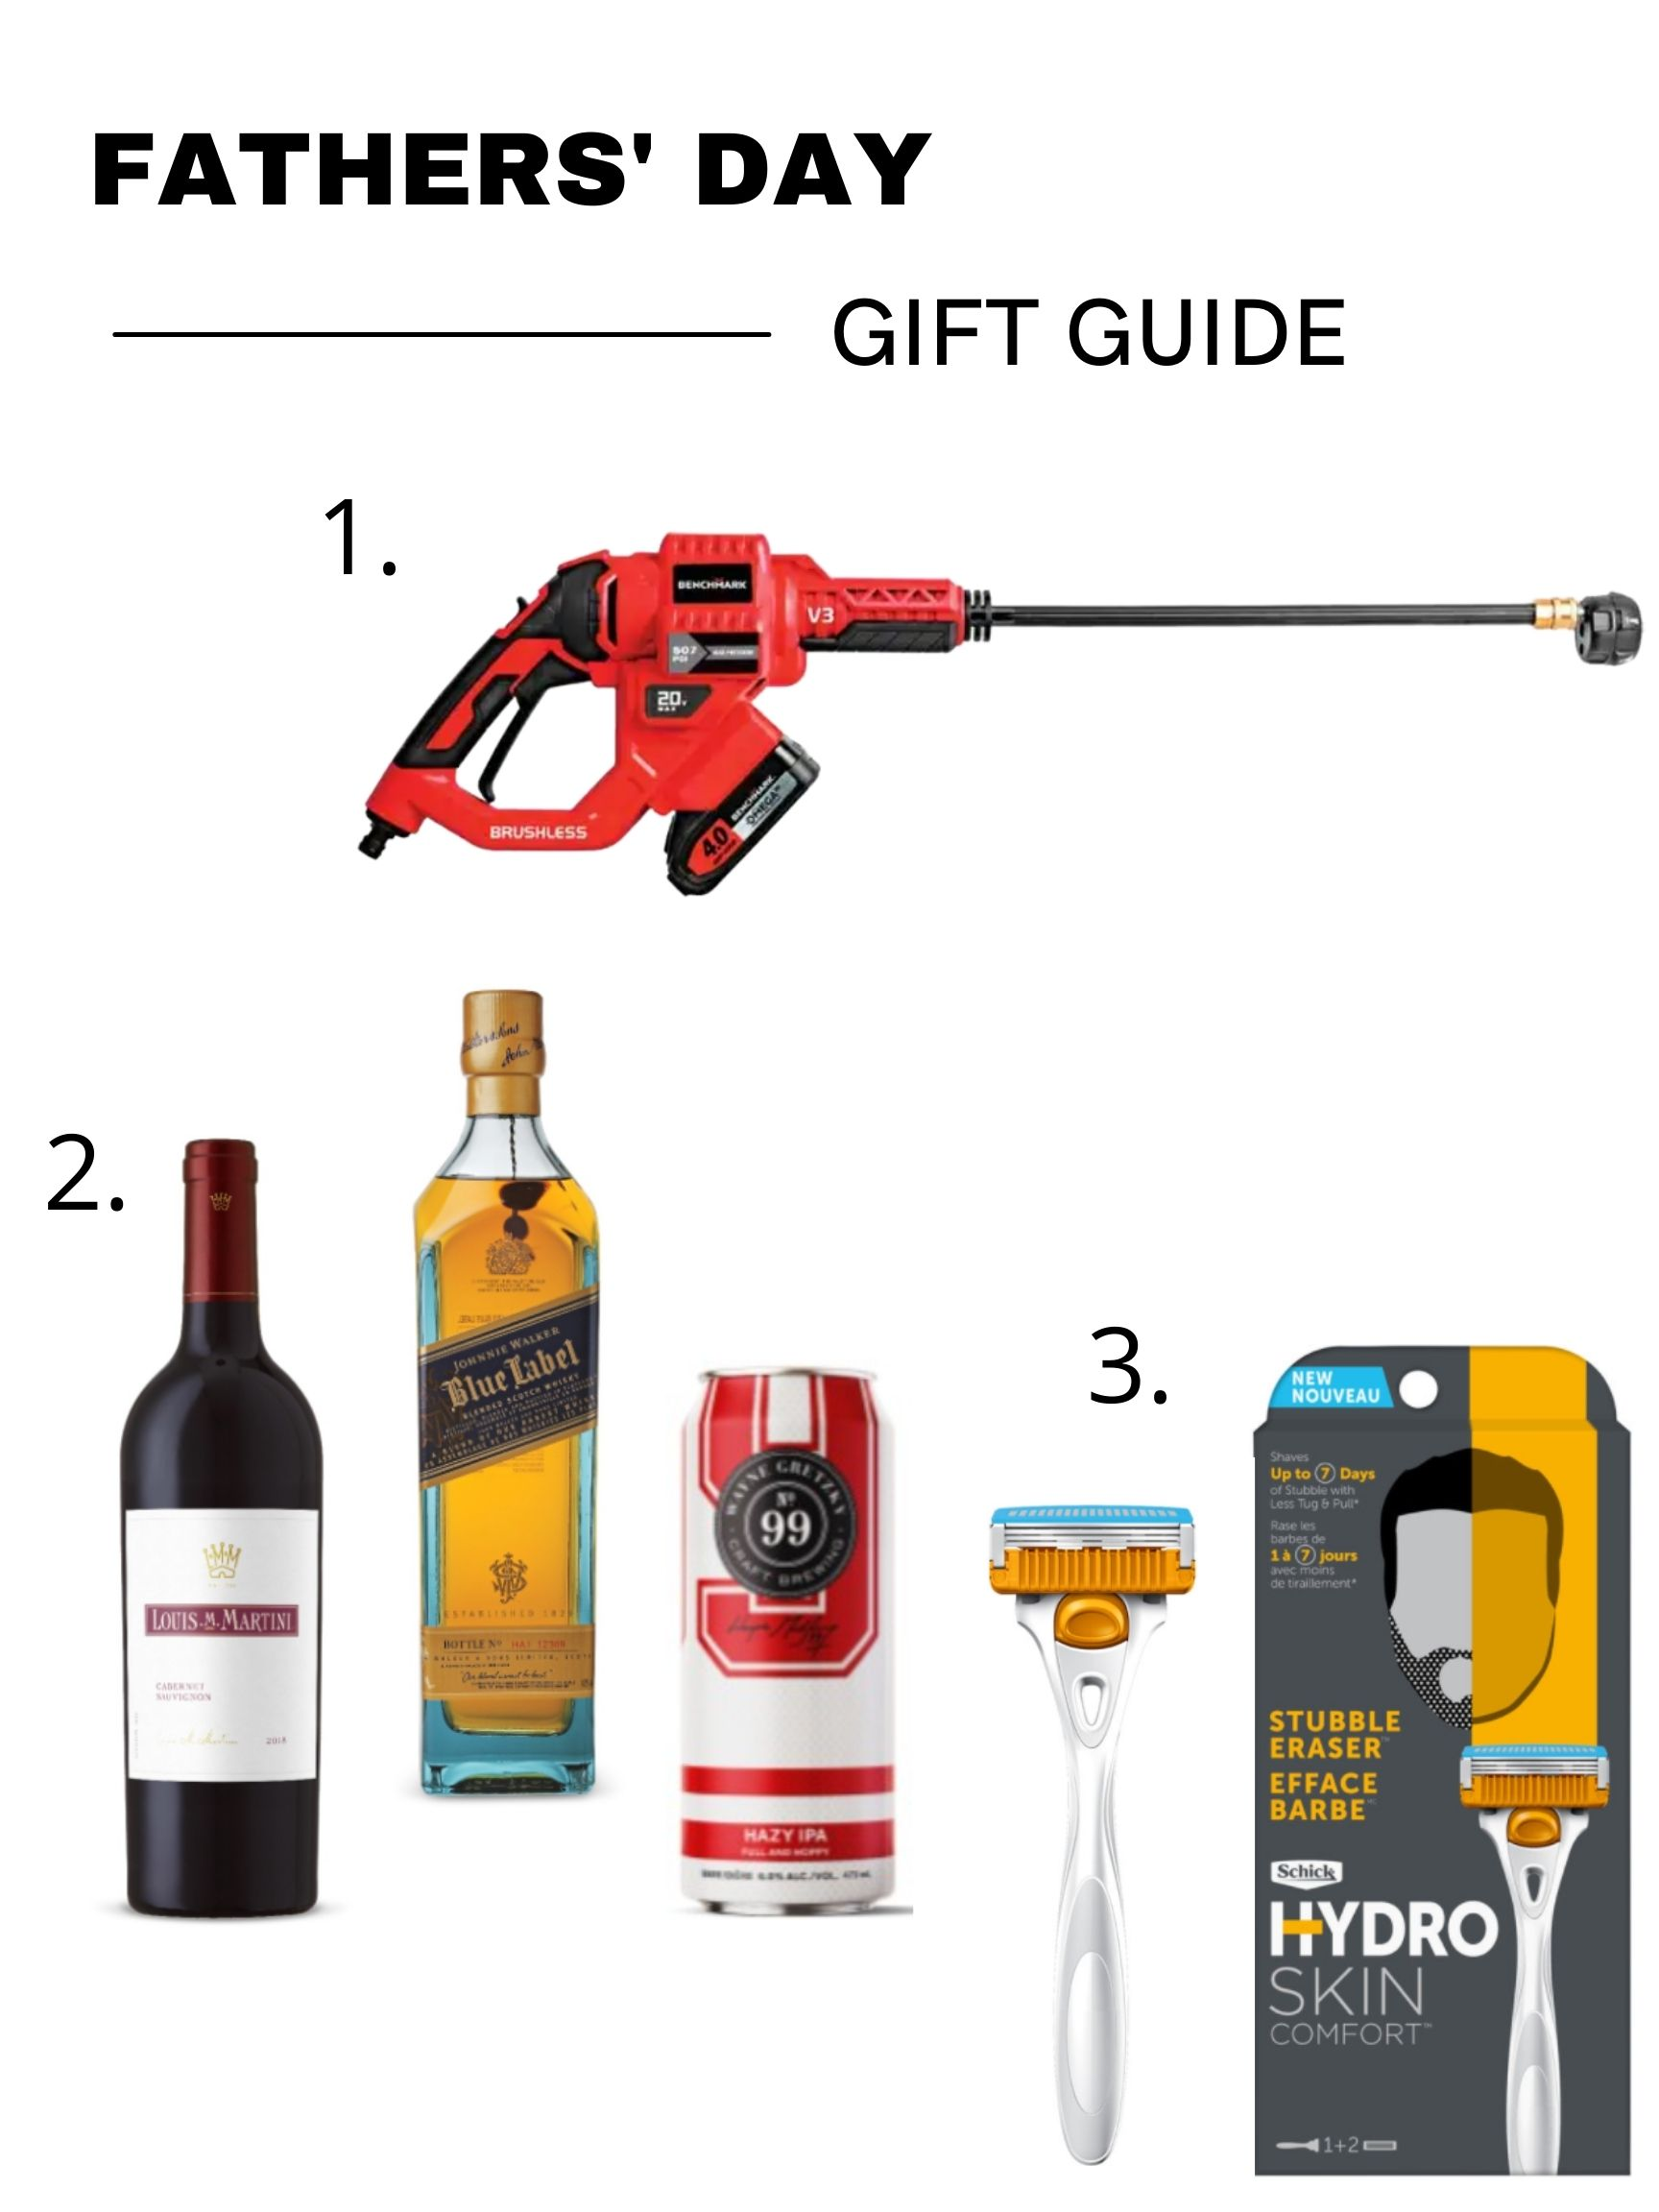 FATHER'S DAY GIFT IDEAS – 2021